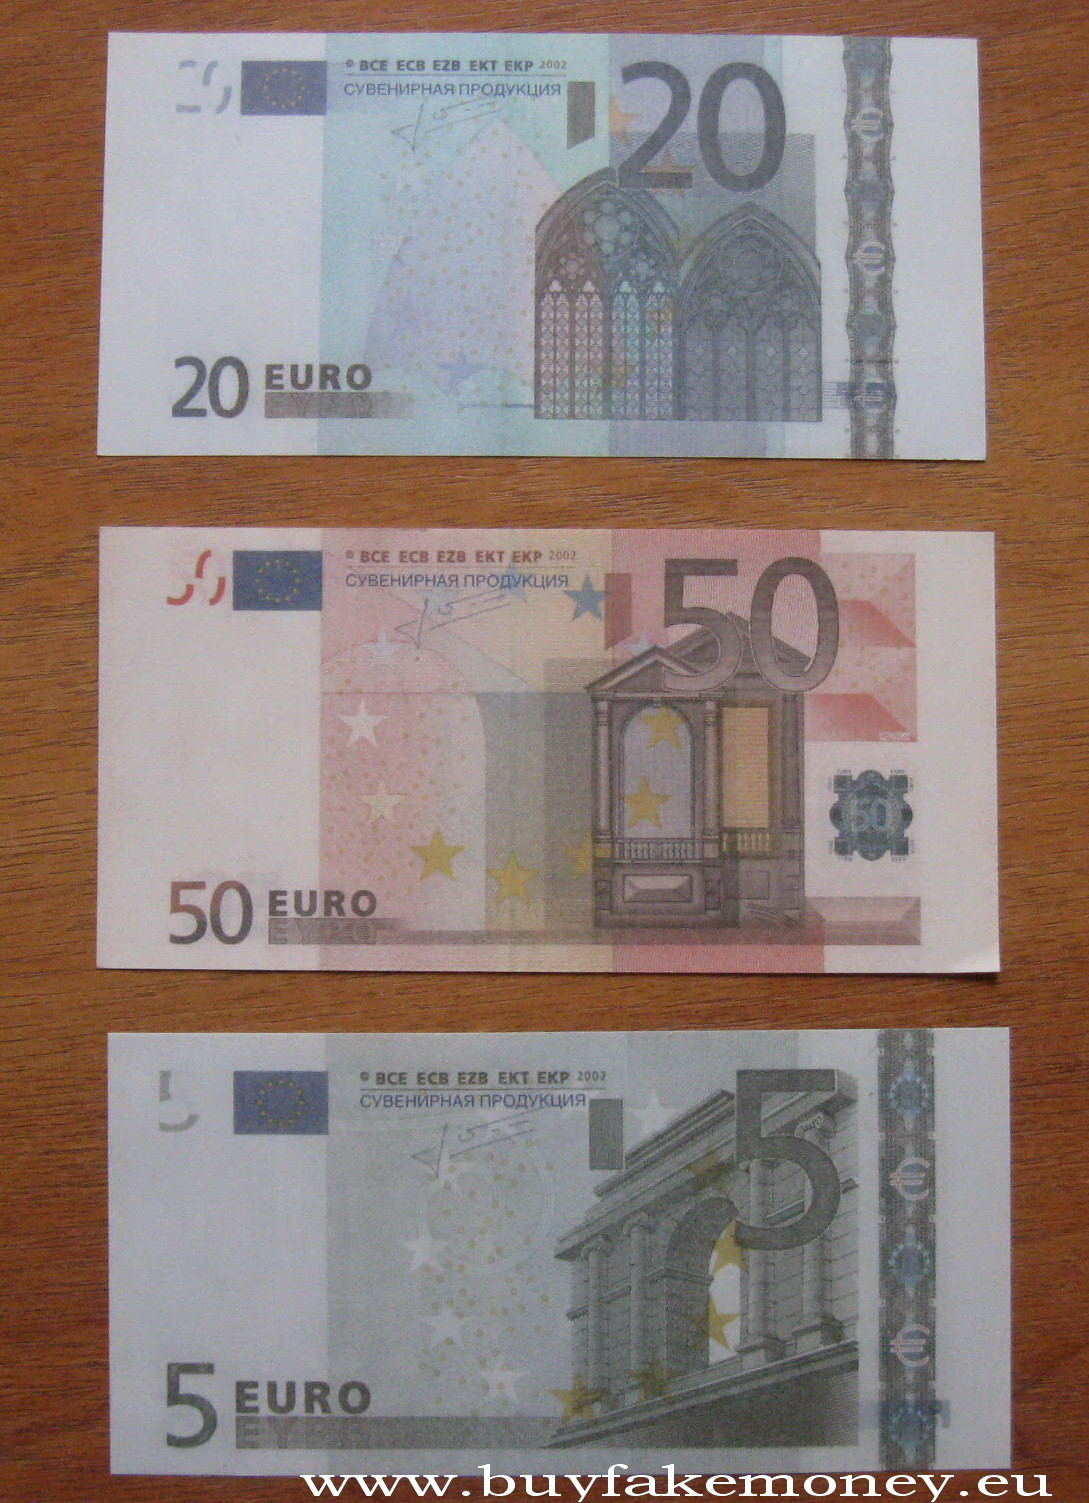 WHERE TO BUY SUPER HIGH QUALITY FAKE MONEY ONLINE